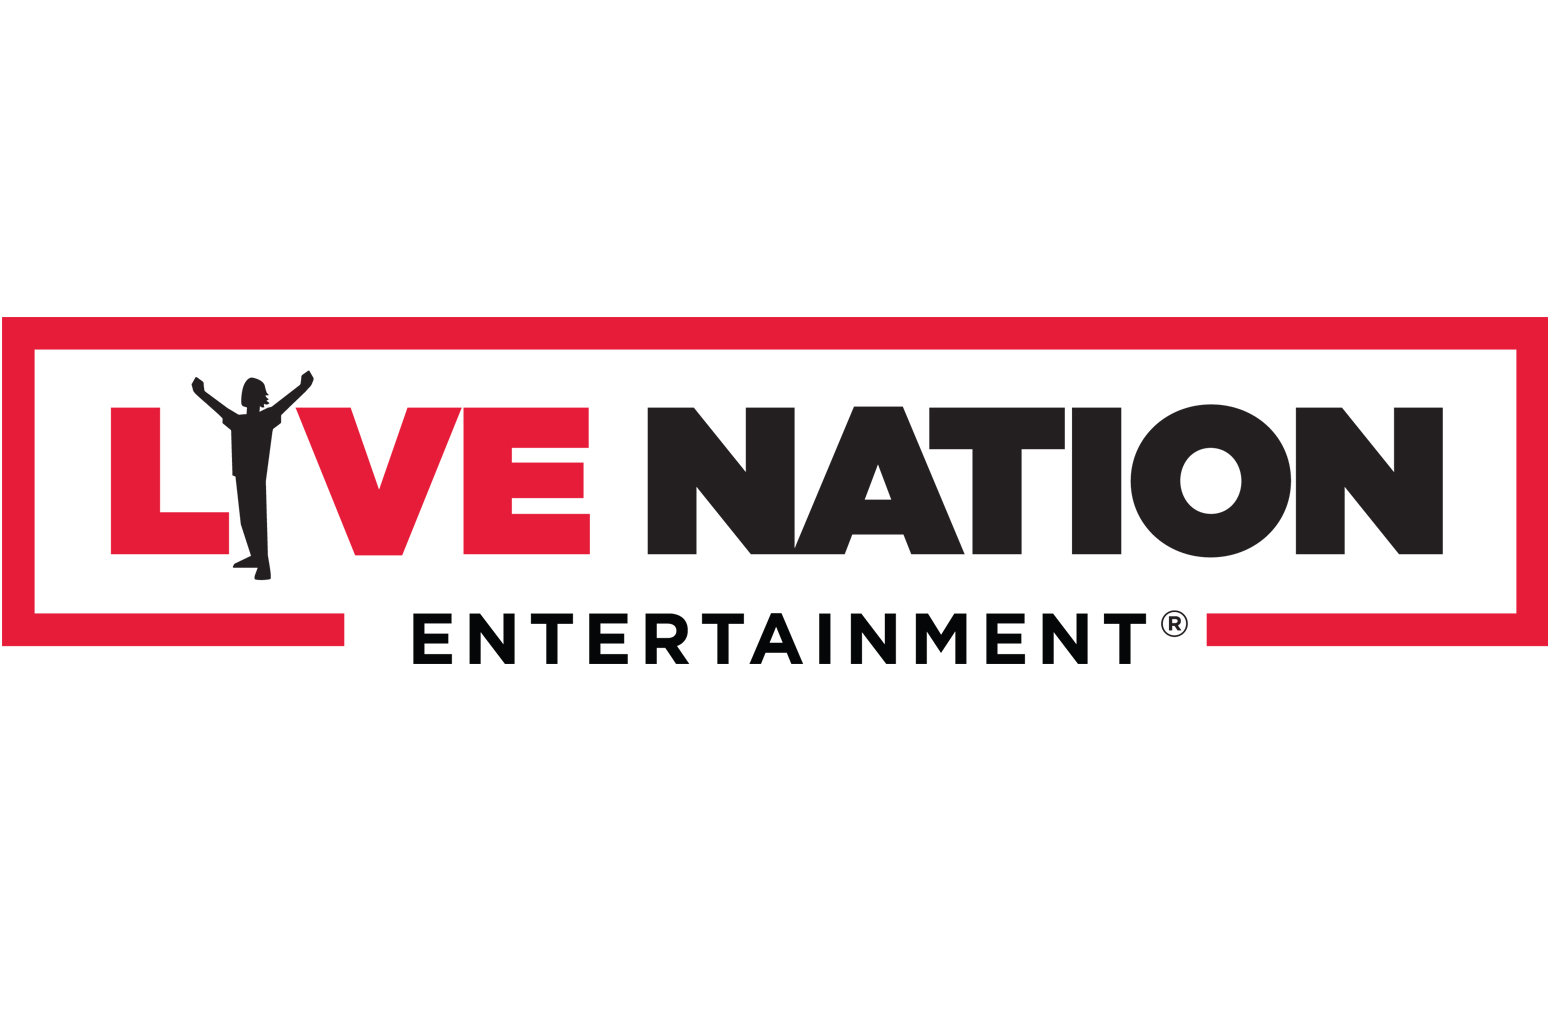 59-Year-Old Bartender Sues Live Nation for Age Discrimination